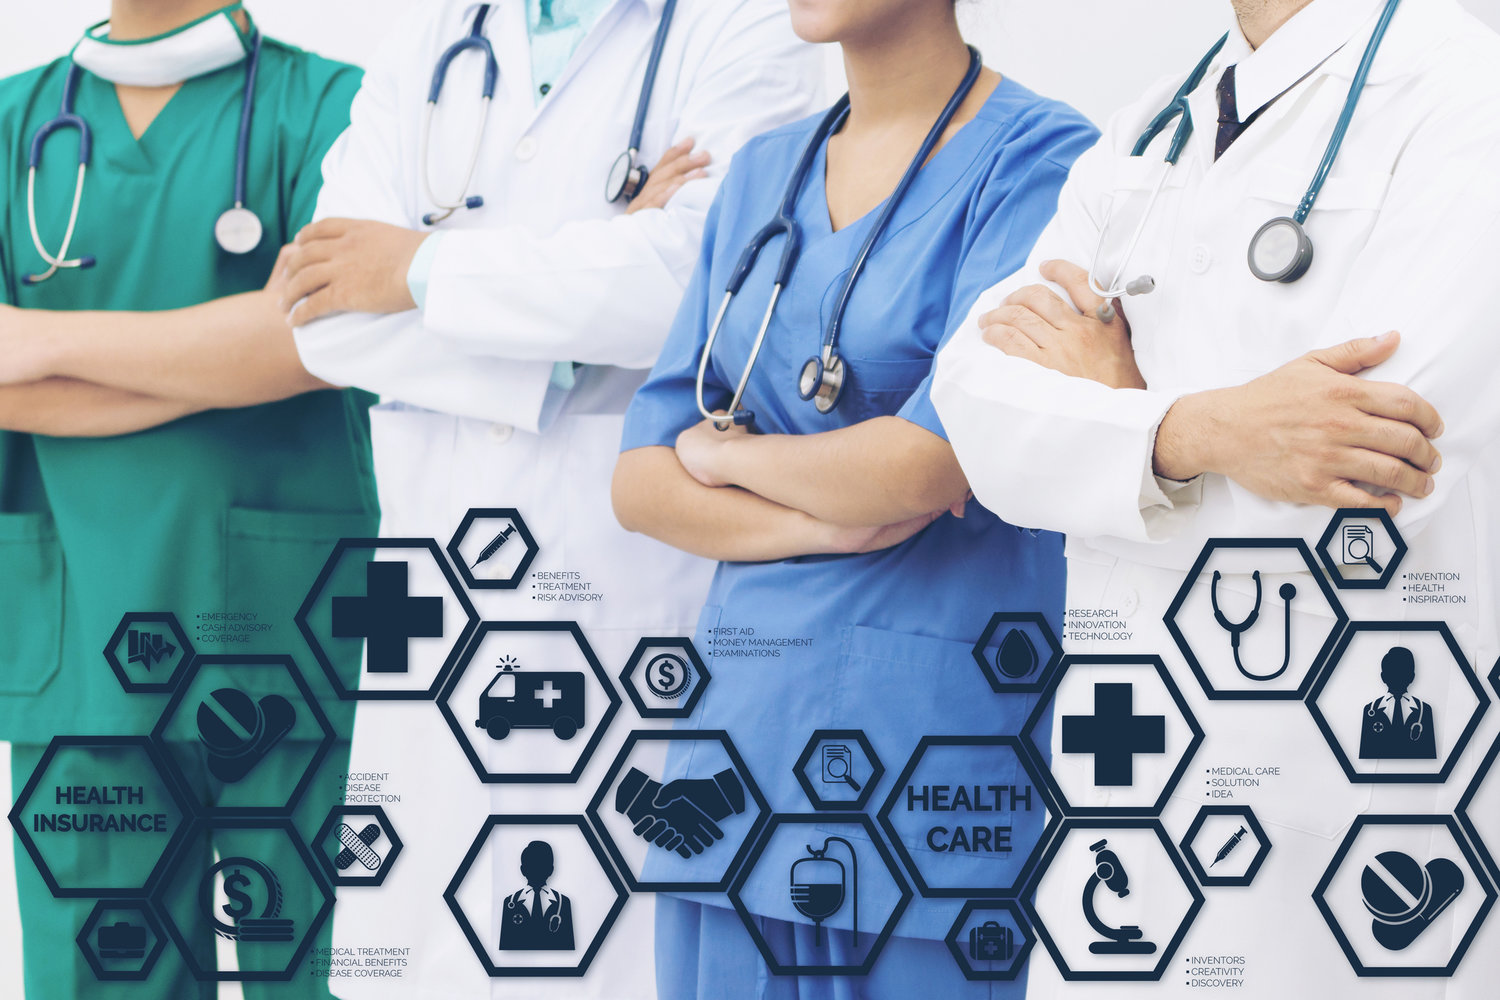 Medical Association - We assisted ASMP in automating the membership subscription process which requires minimal effort to maintain each year and brought in the necessary seed funding to allow the association to expand and develop its vital training package to medical students.